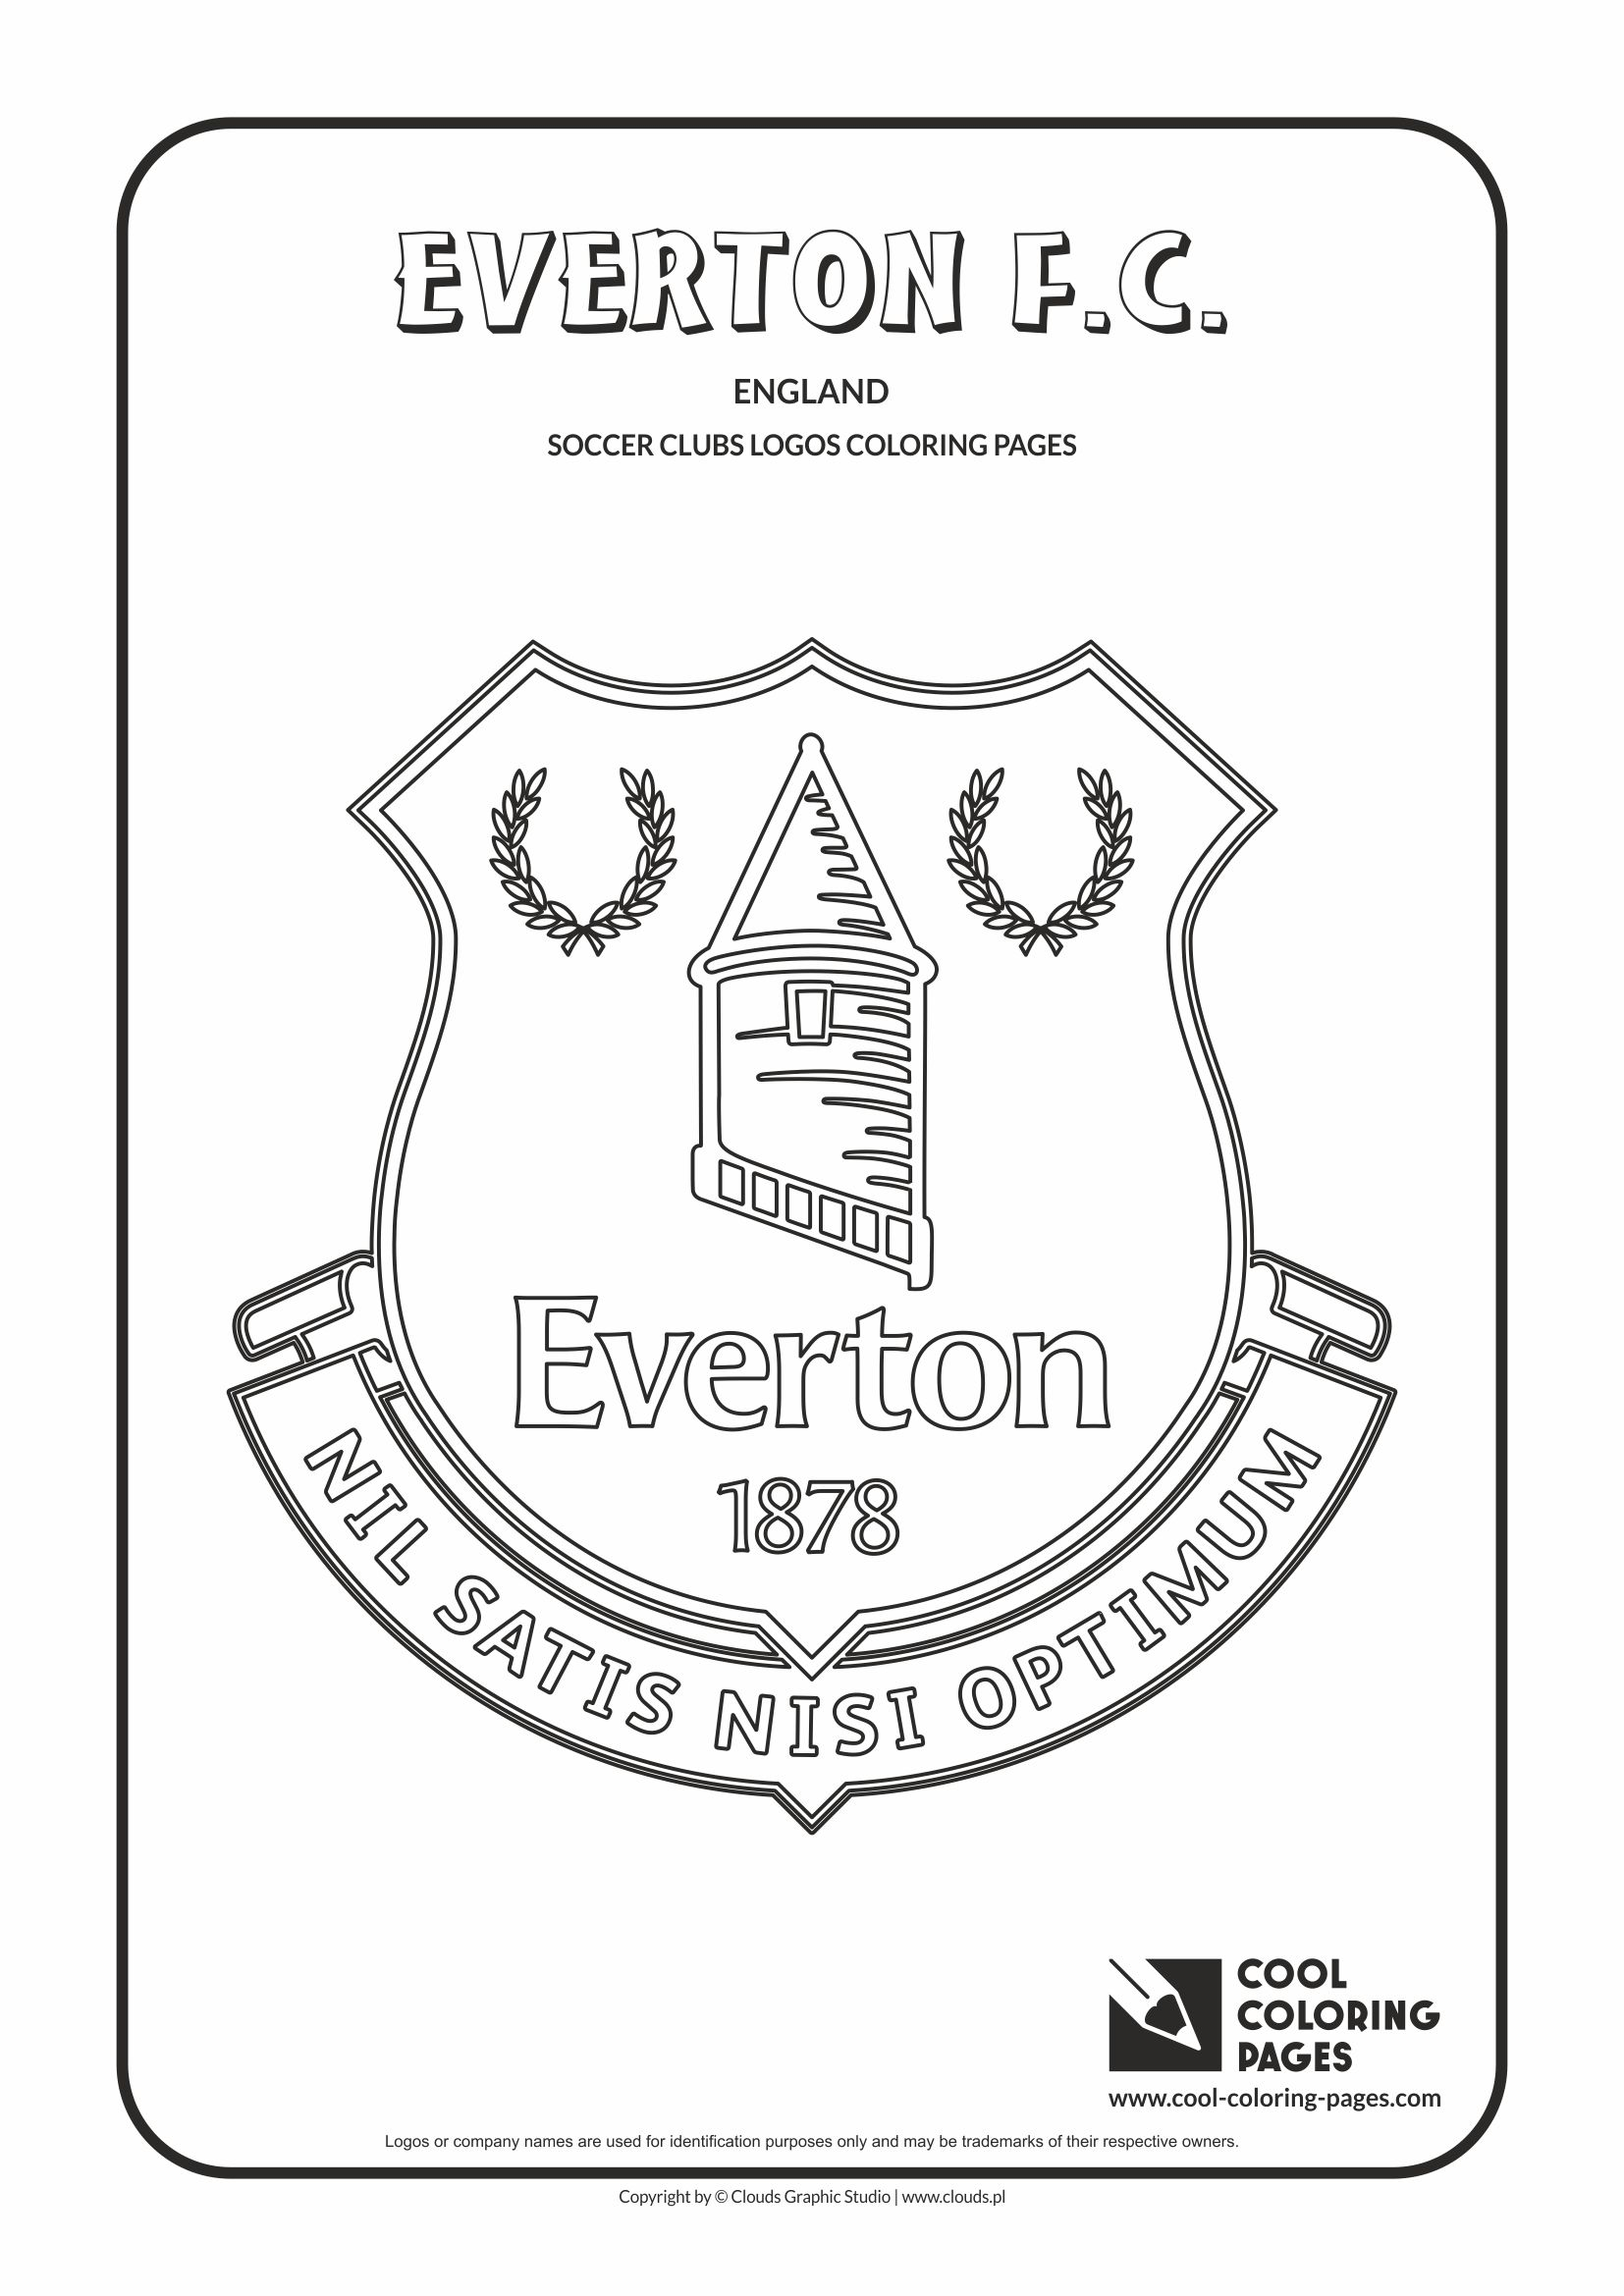 Cool Coloring Pages Soccer clubs logos - Cool Coloring Pages